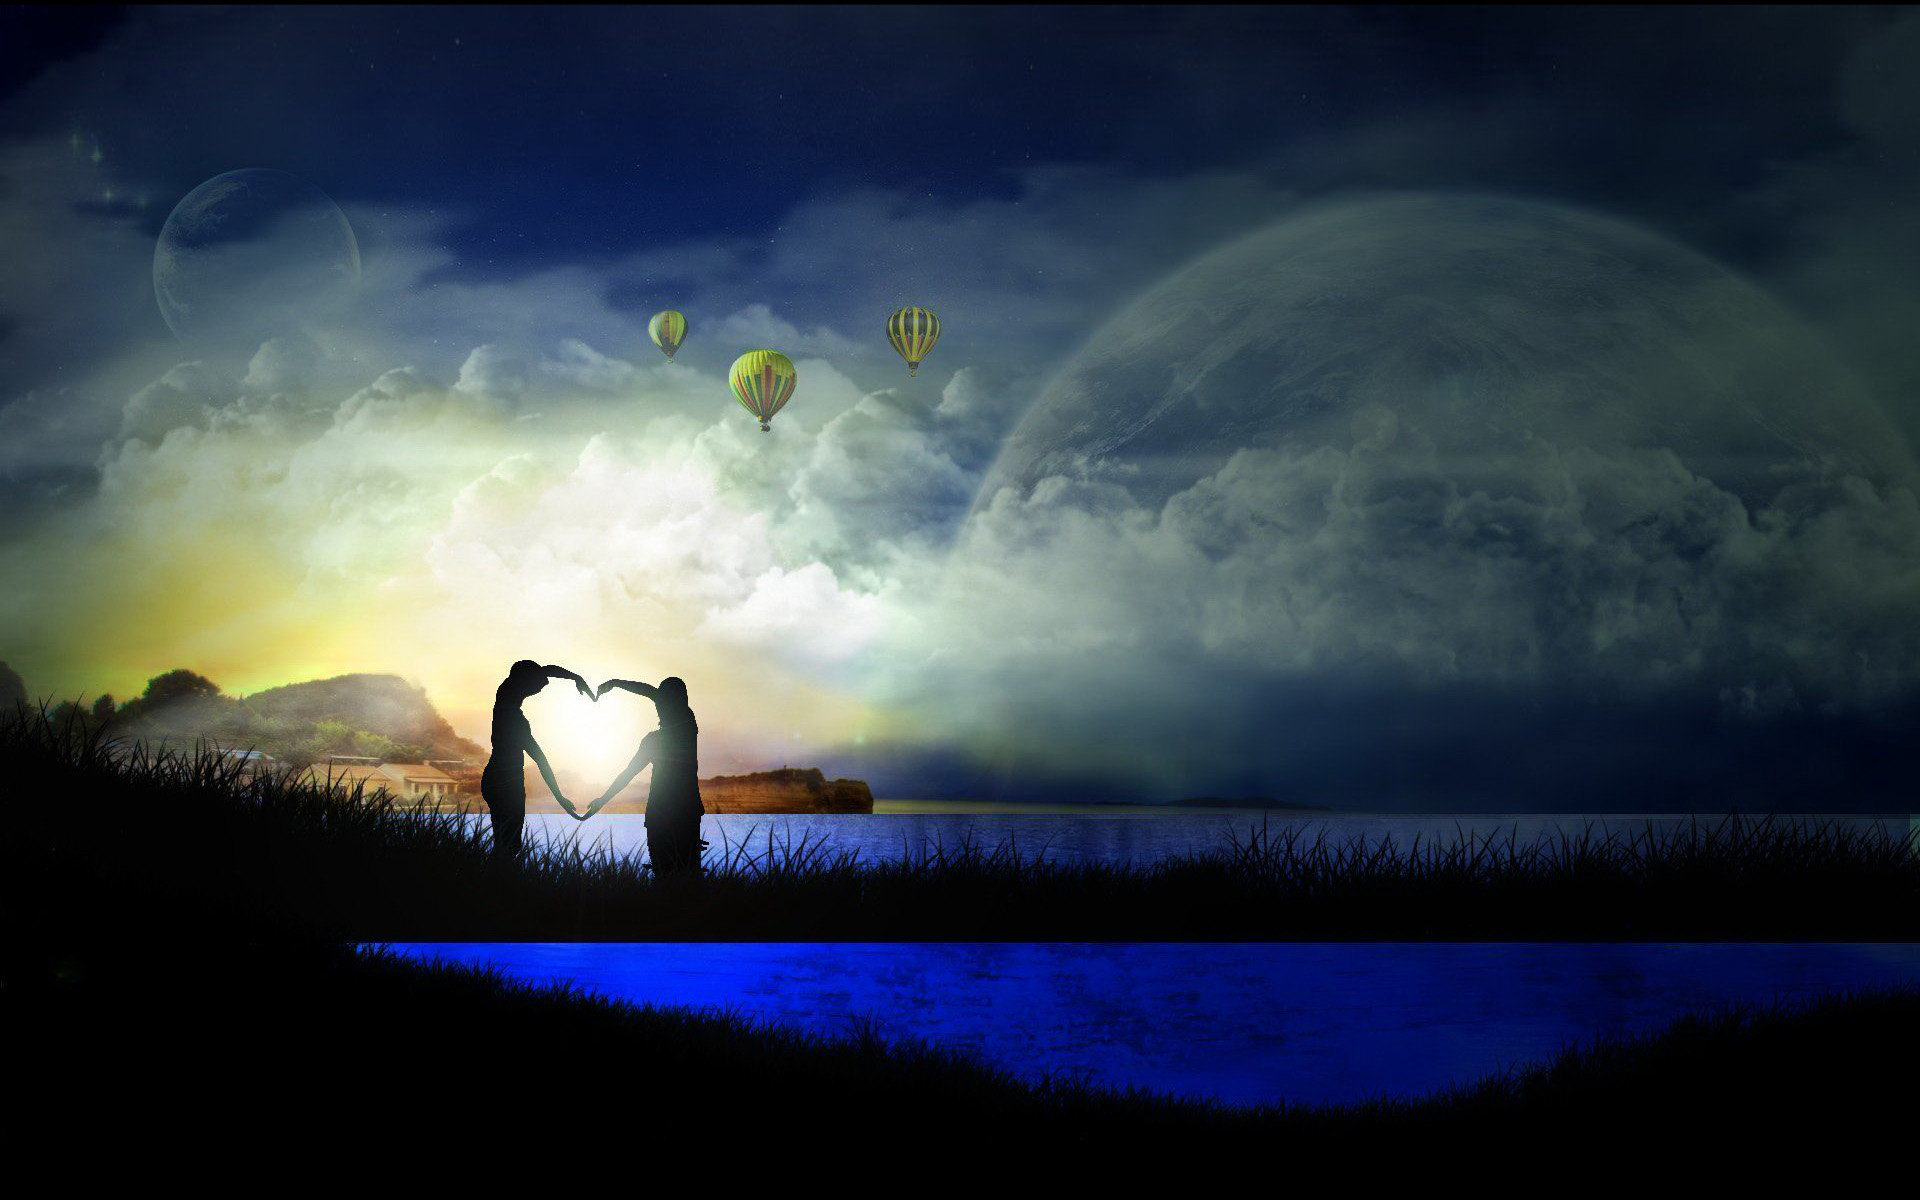 Love Wallpaper Of 2015 : Romantic Wallpapers Best Wallpapers